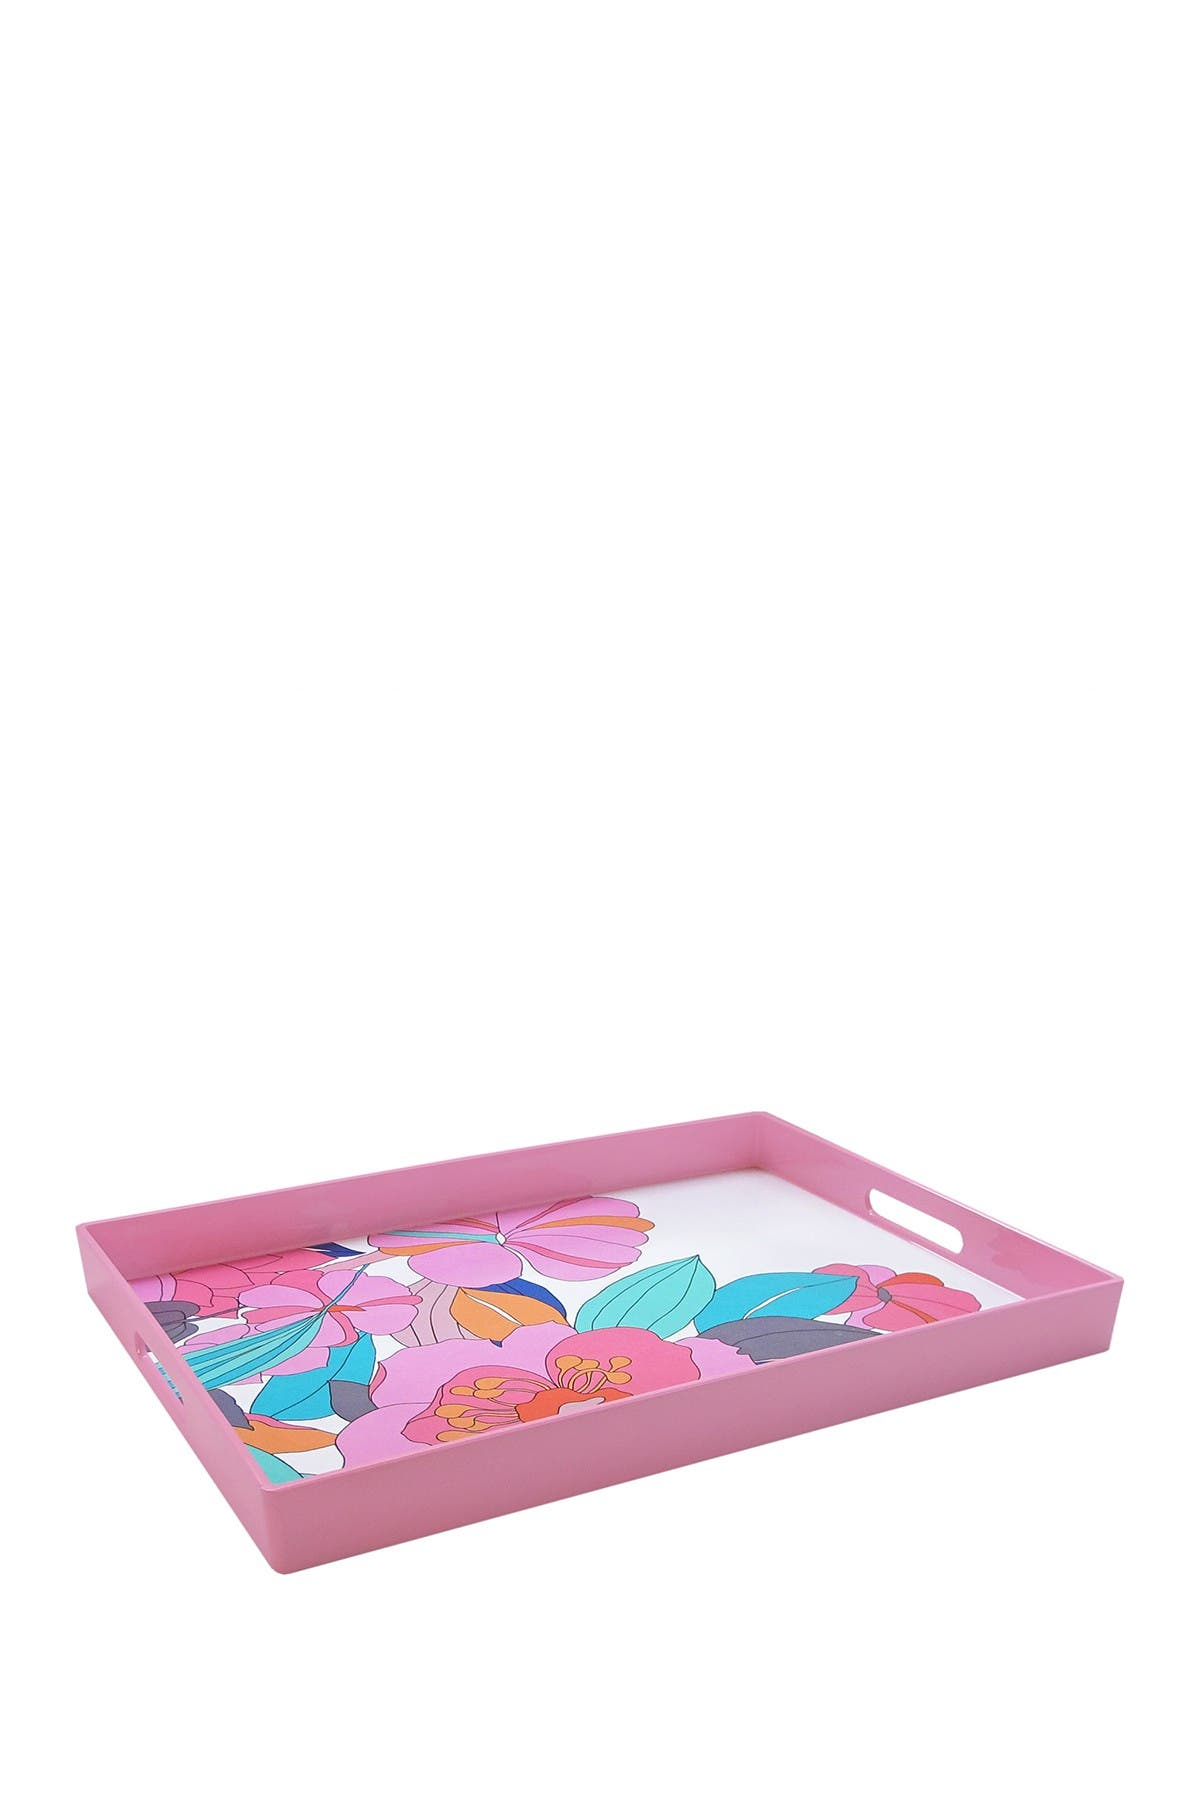 Image of Jay Import Pink Floral Rectangle Tray